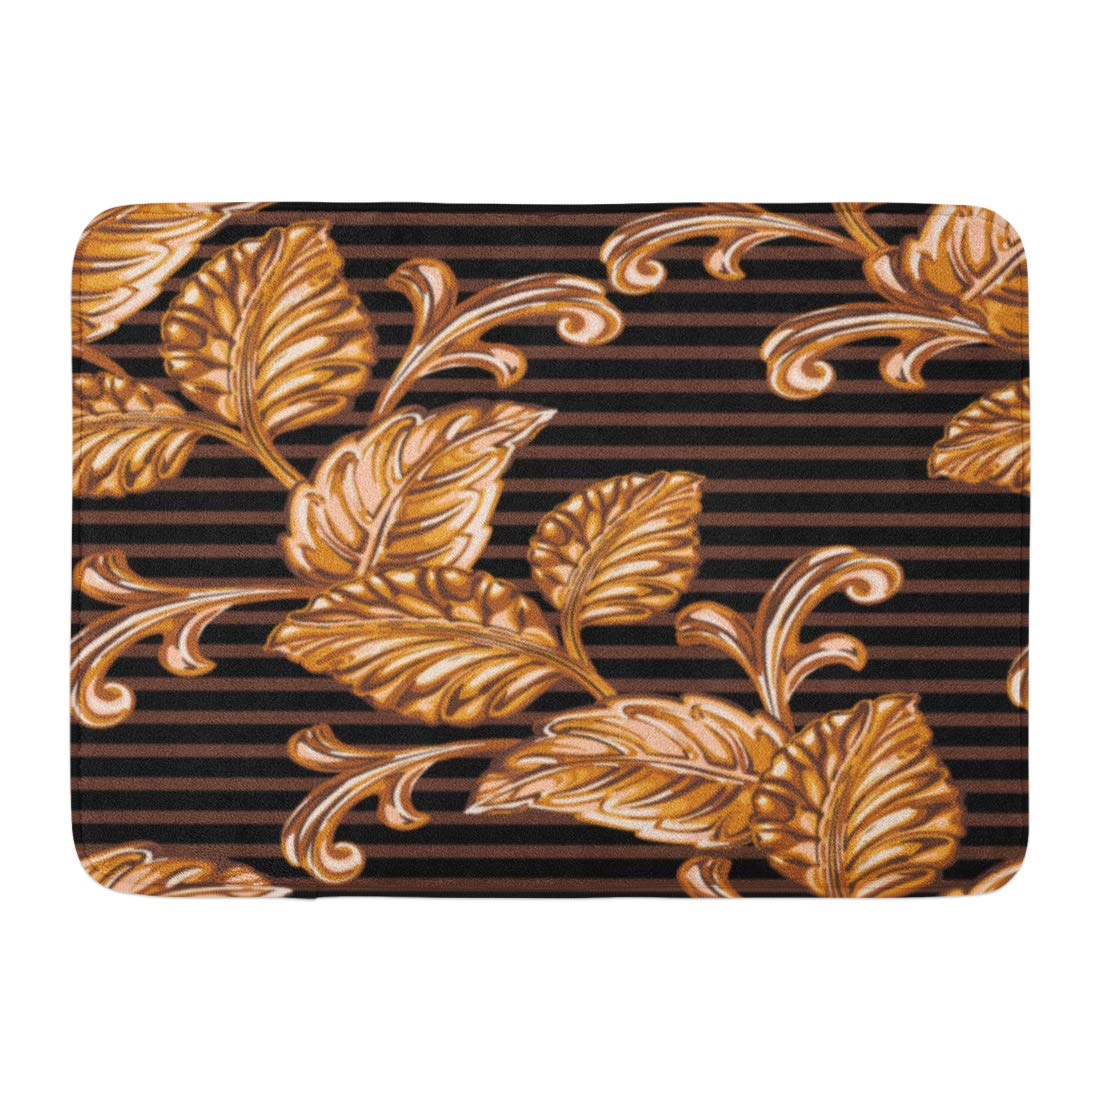 GODPOK Border Black Abstract of Bronze Floral Blossom Cell Rug Doormat Bath Mat 23.6x15.7 inch